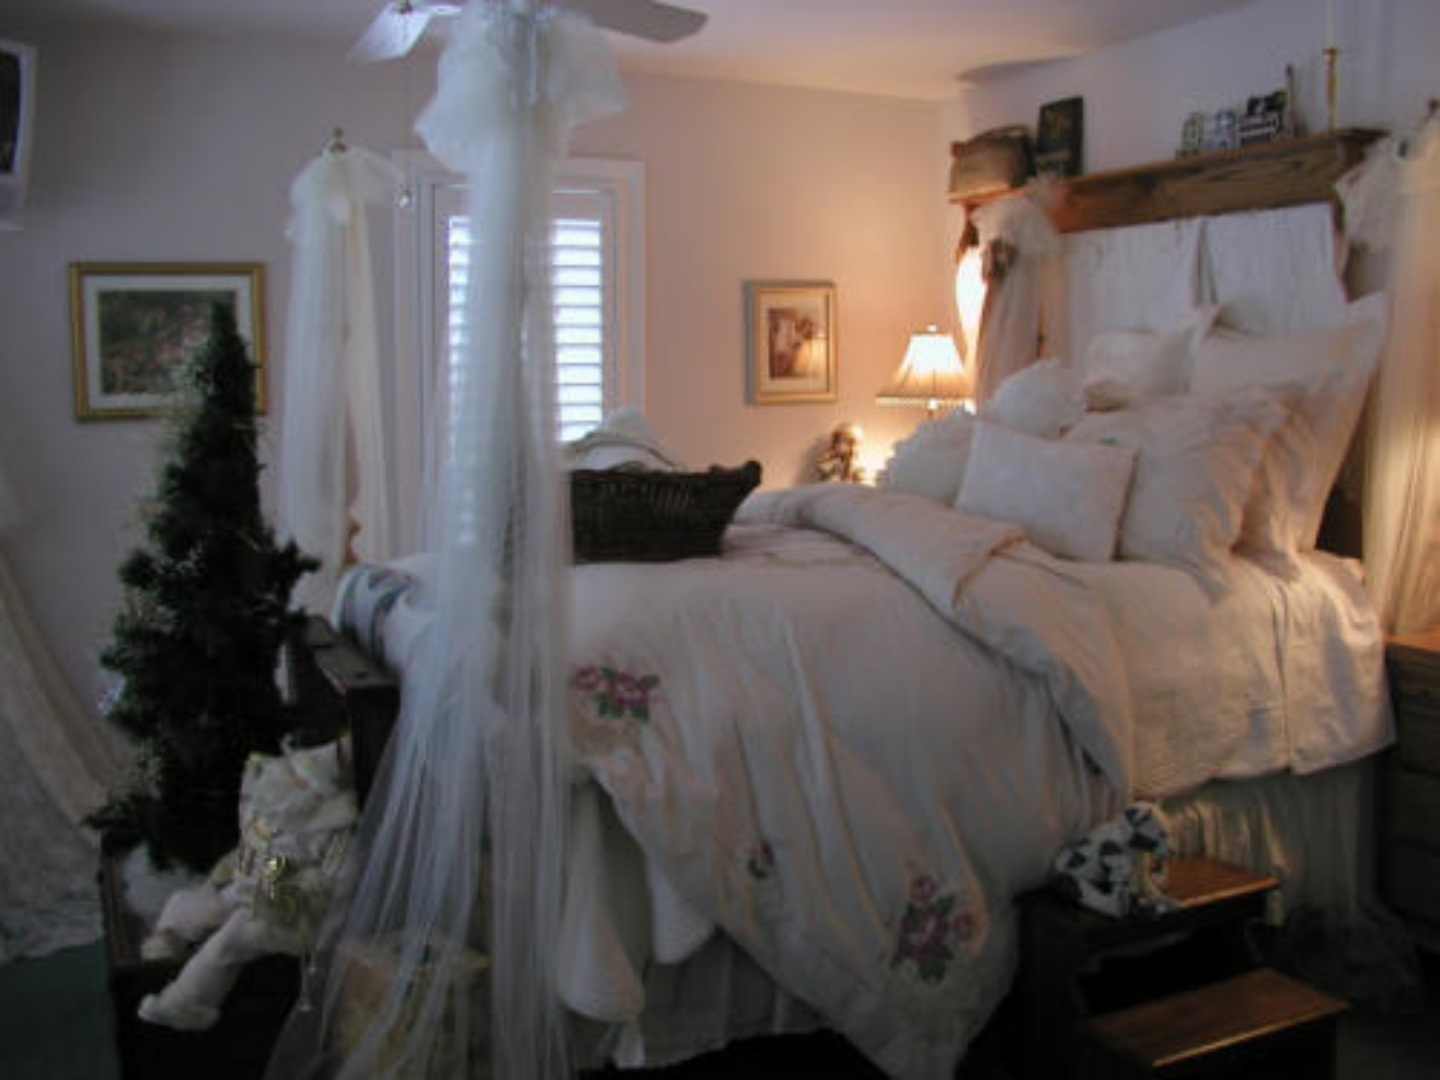 A bedroom with a bed and looking at the camera at Canterbury Chateau Bed & Breakfast.